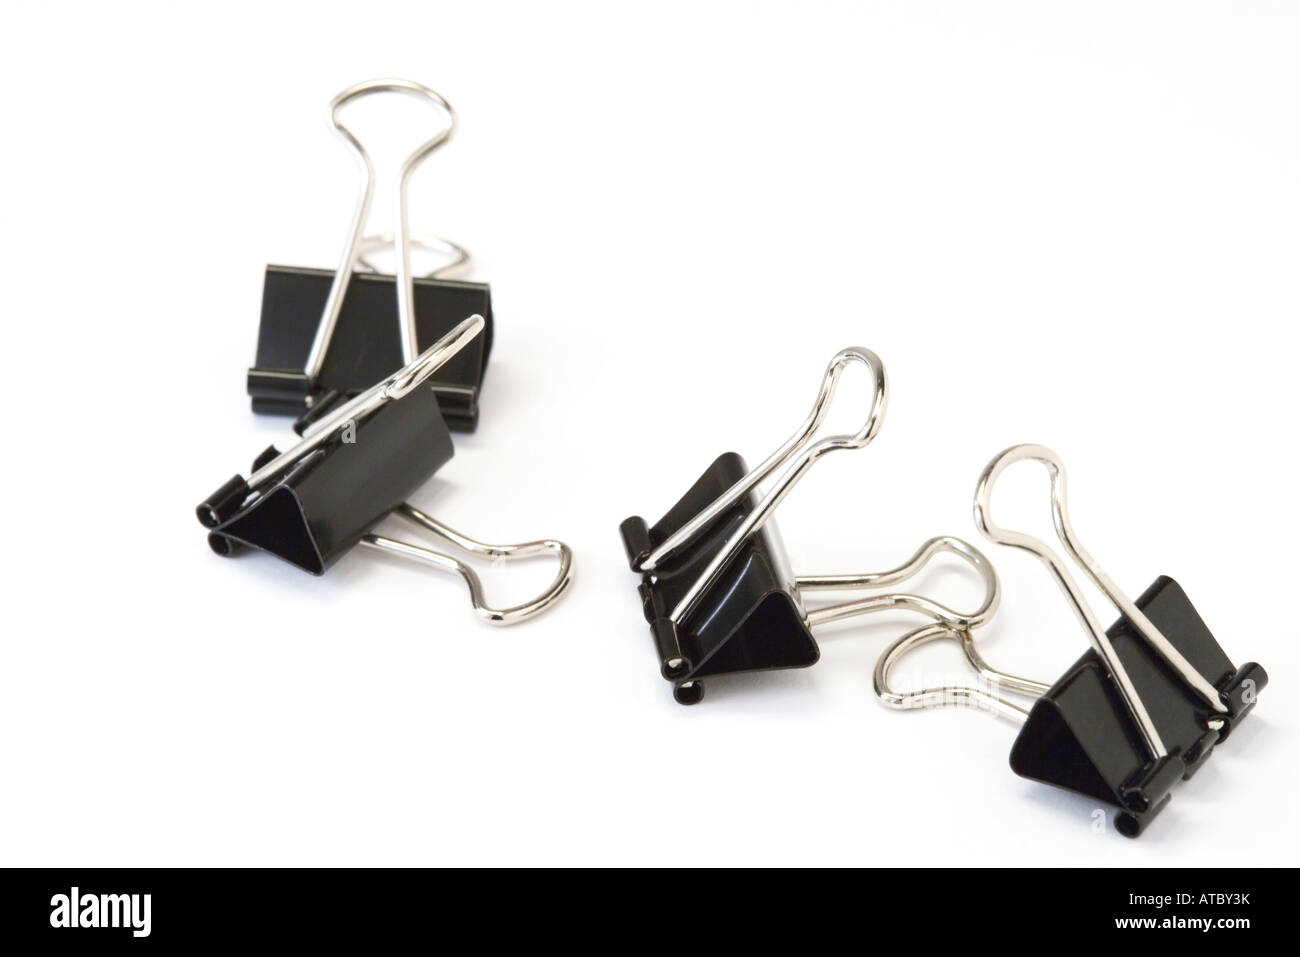 Bindemittel-Clips, close-up Stockbild